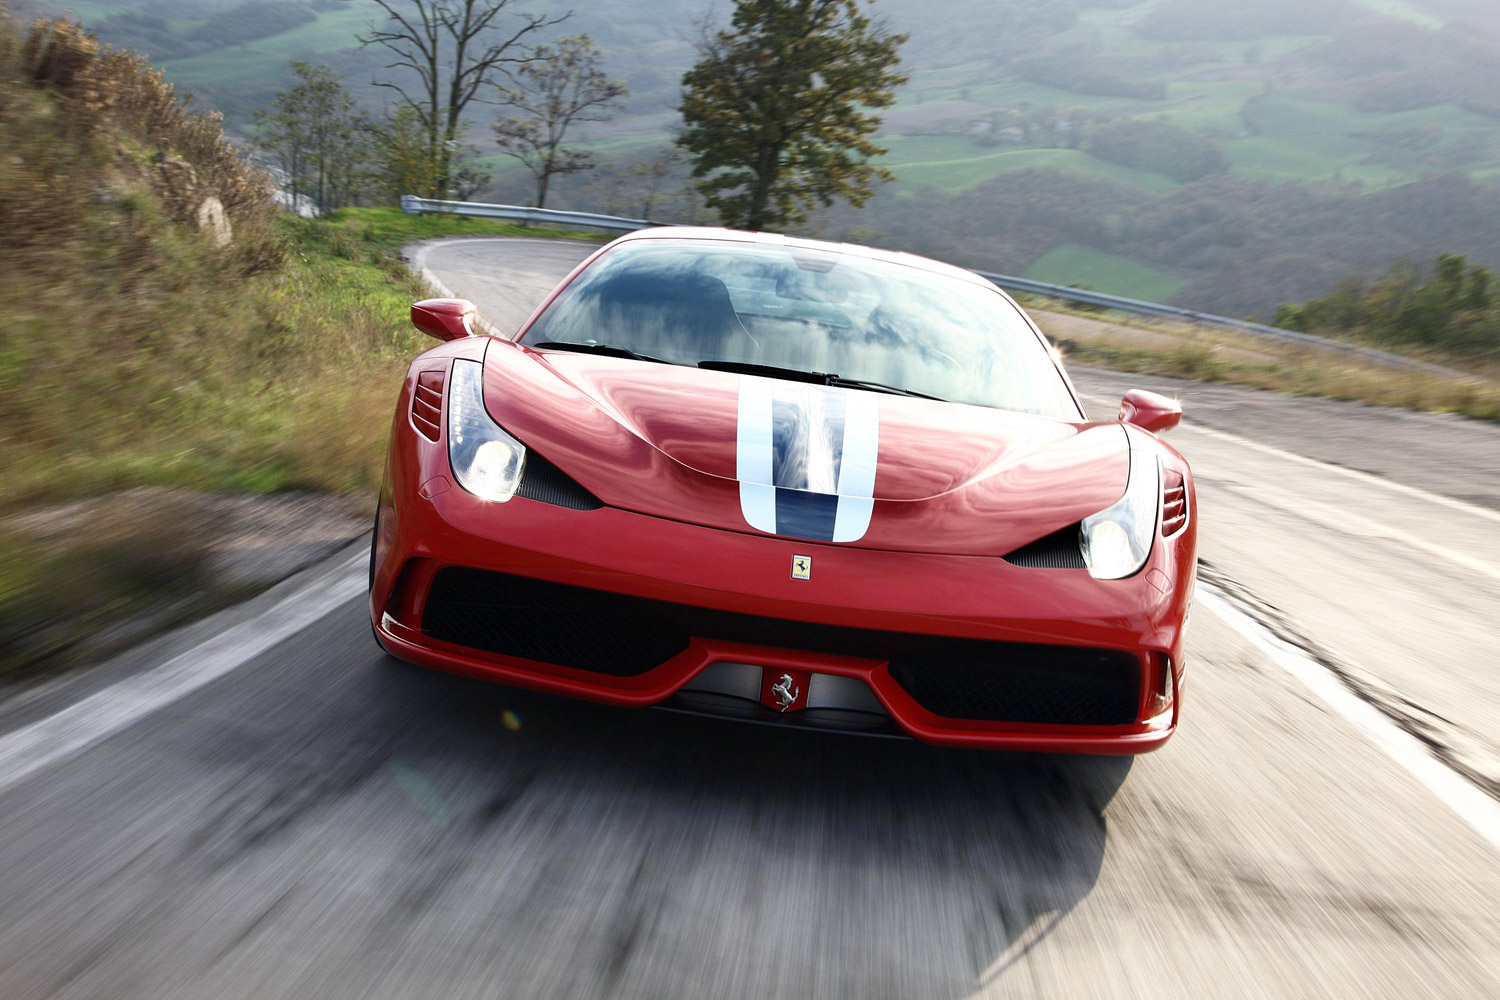 Leading Finance Provider Reveals the Top Ten Supercars of 2017 4